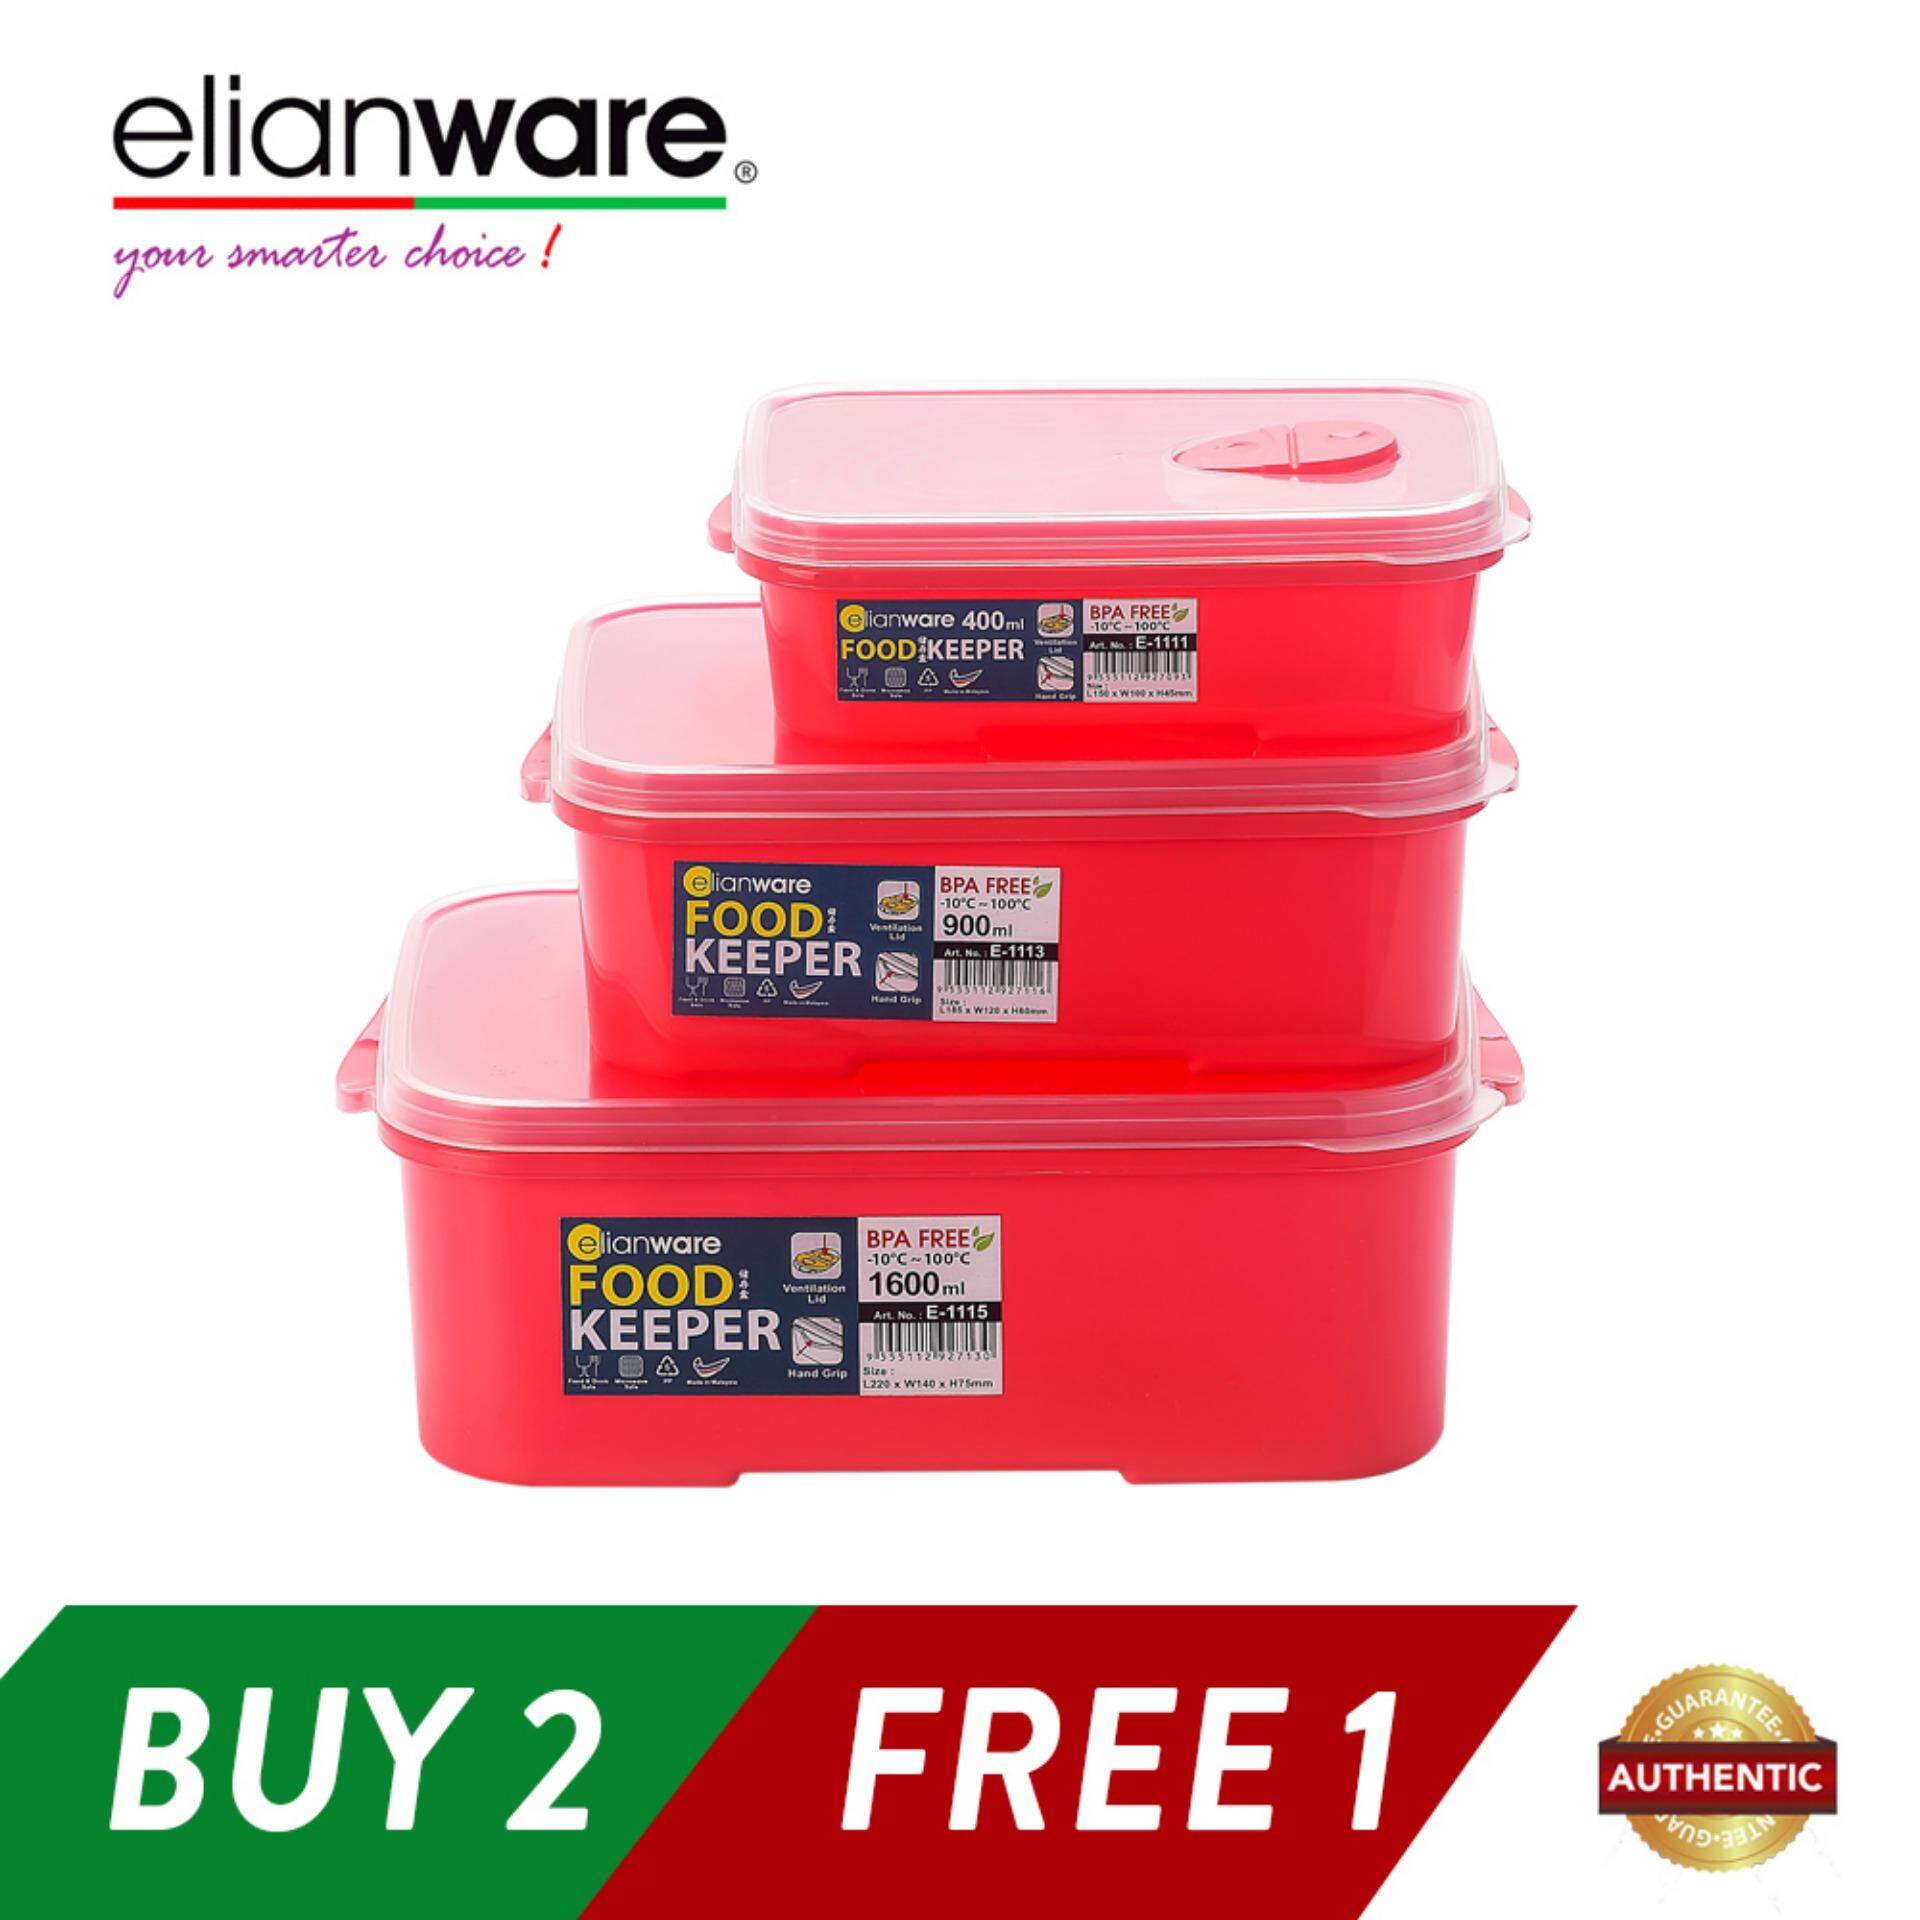 Elianware 3 Pcs BPA Free Special Food Keeper Set Microwavable Food Container